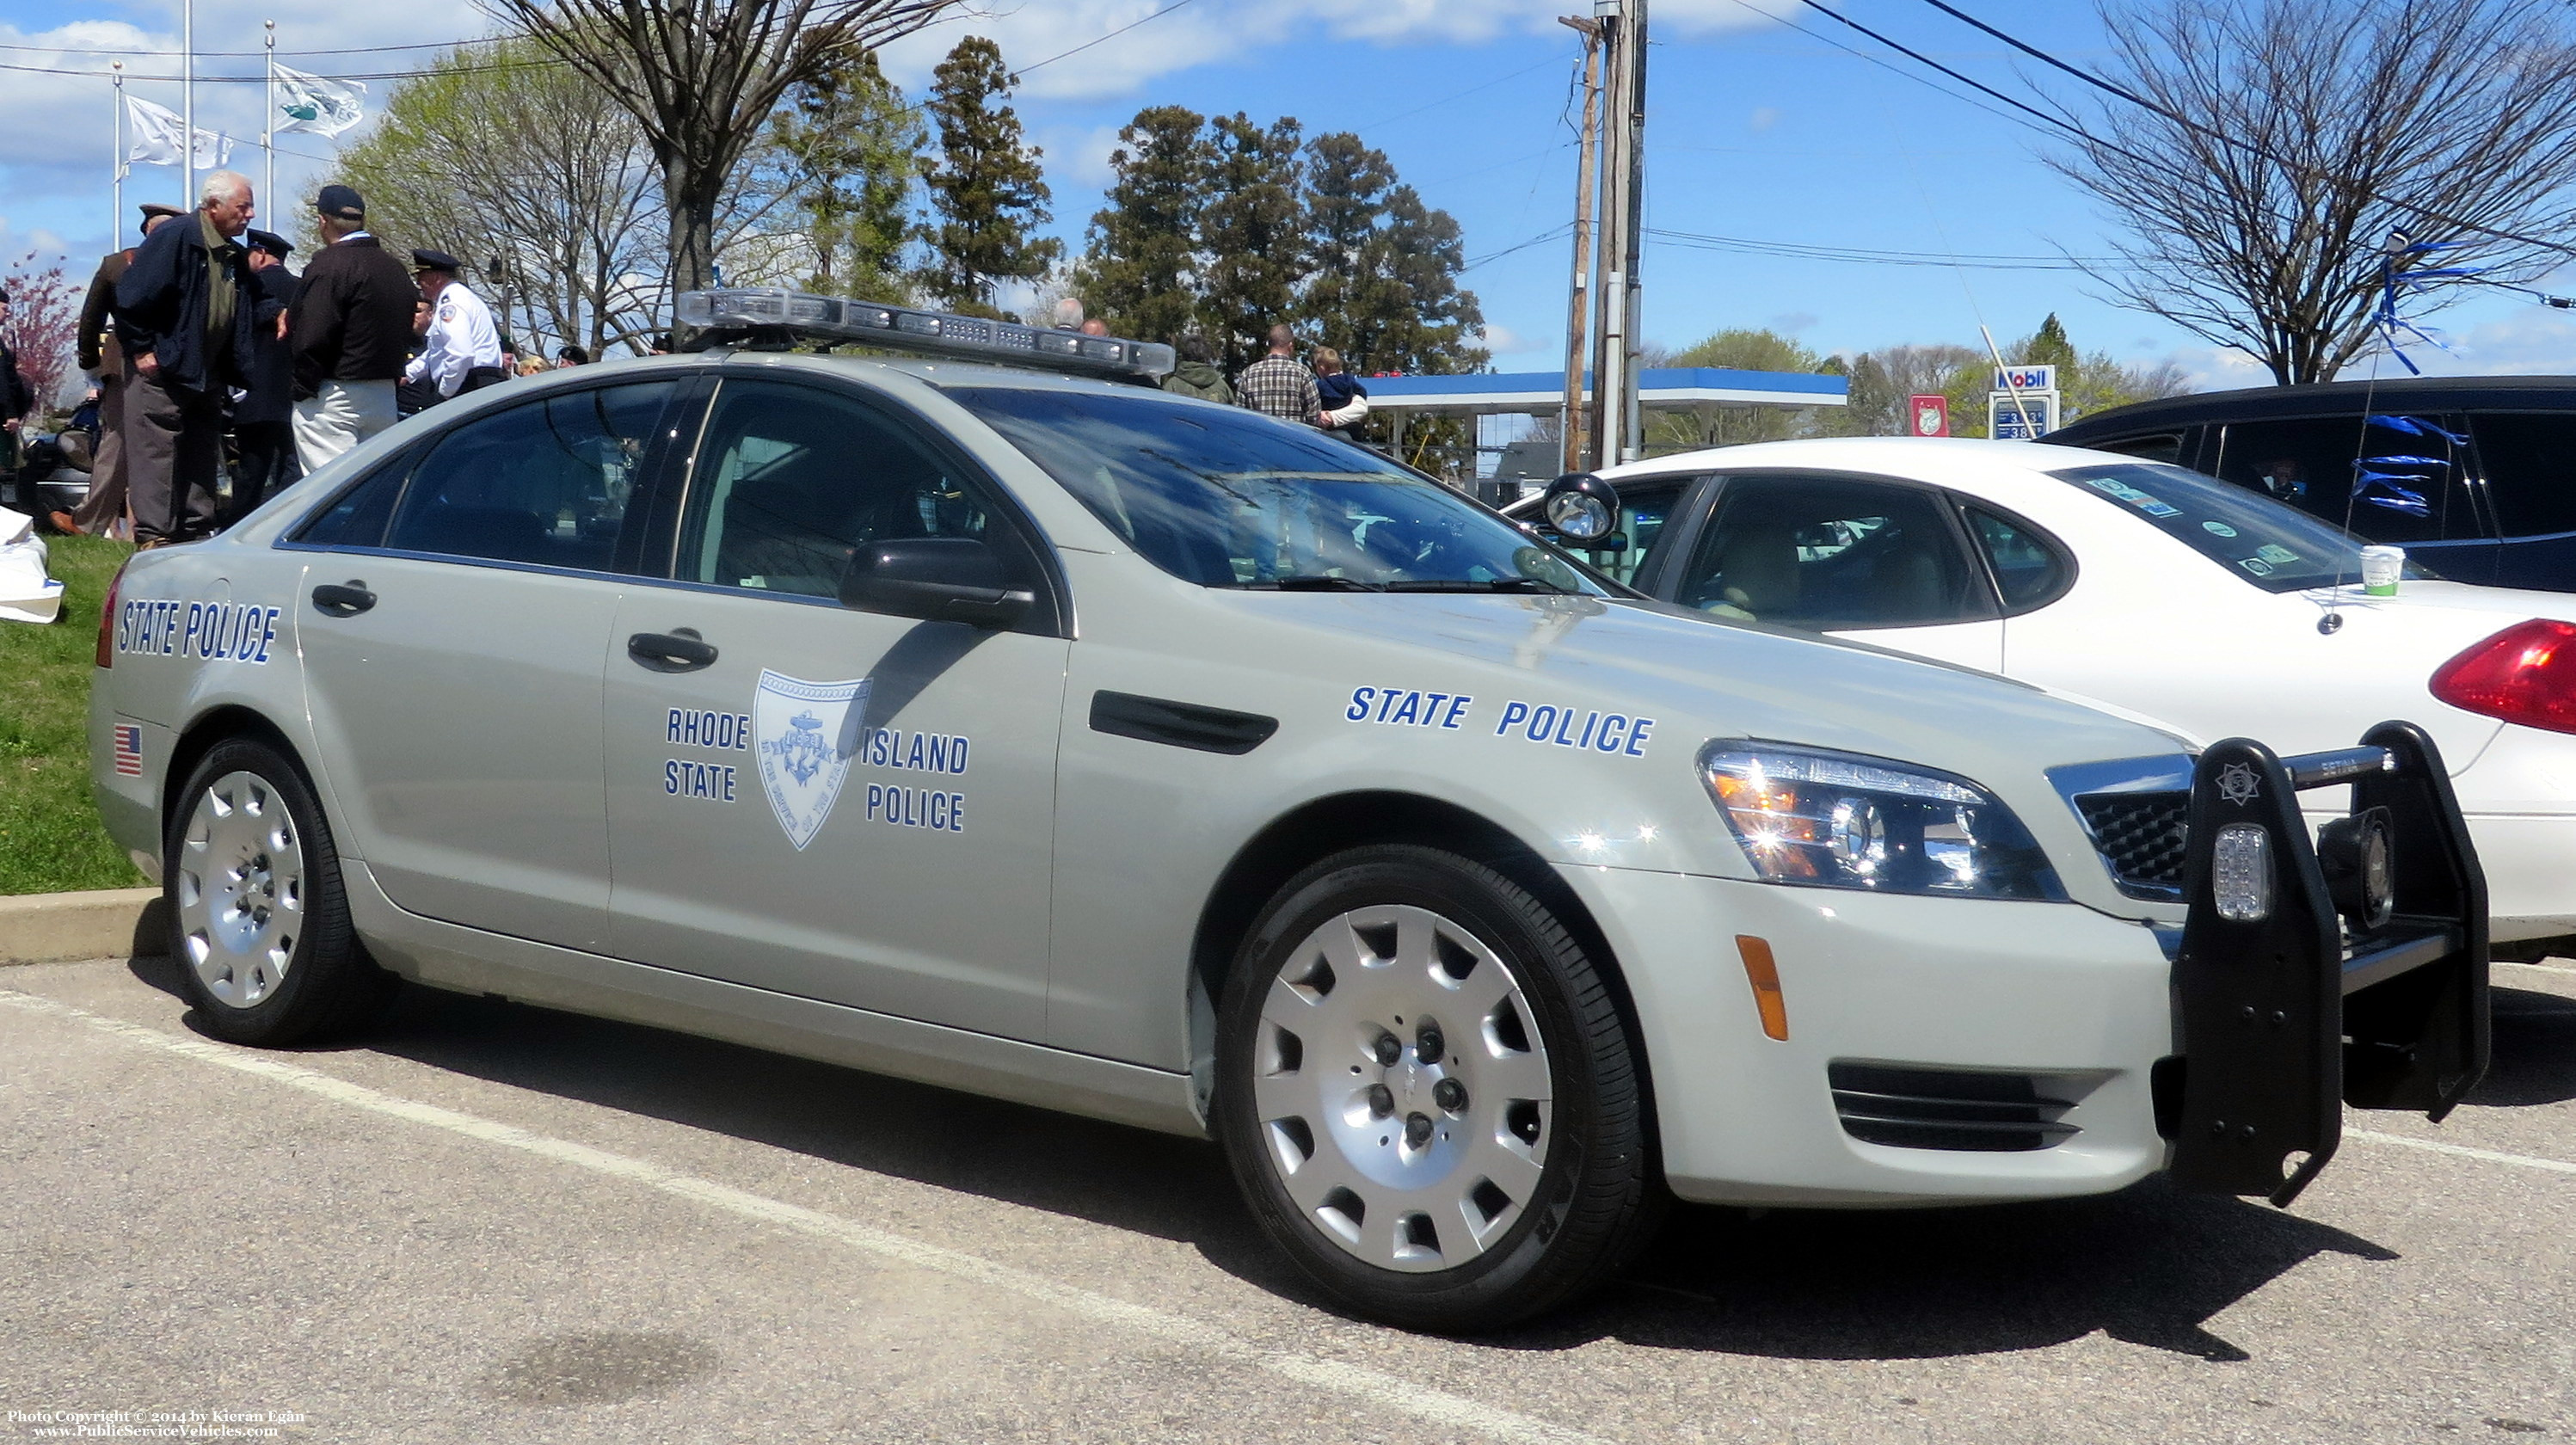 A photo  of Rhode Island State Police             Cruiser 242, a 2013 Chevrolet Caprice             taken by Kieran Egan